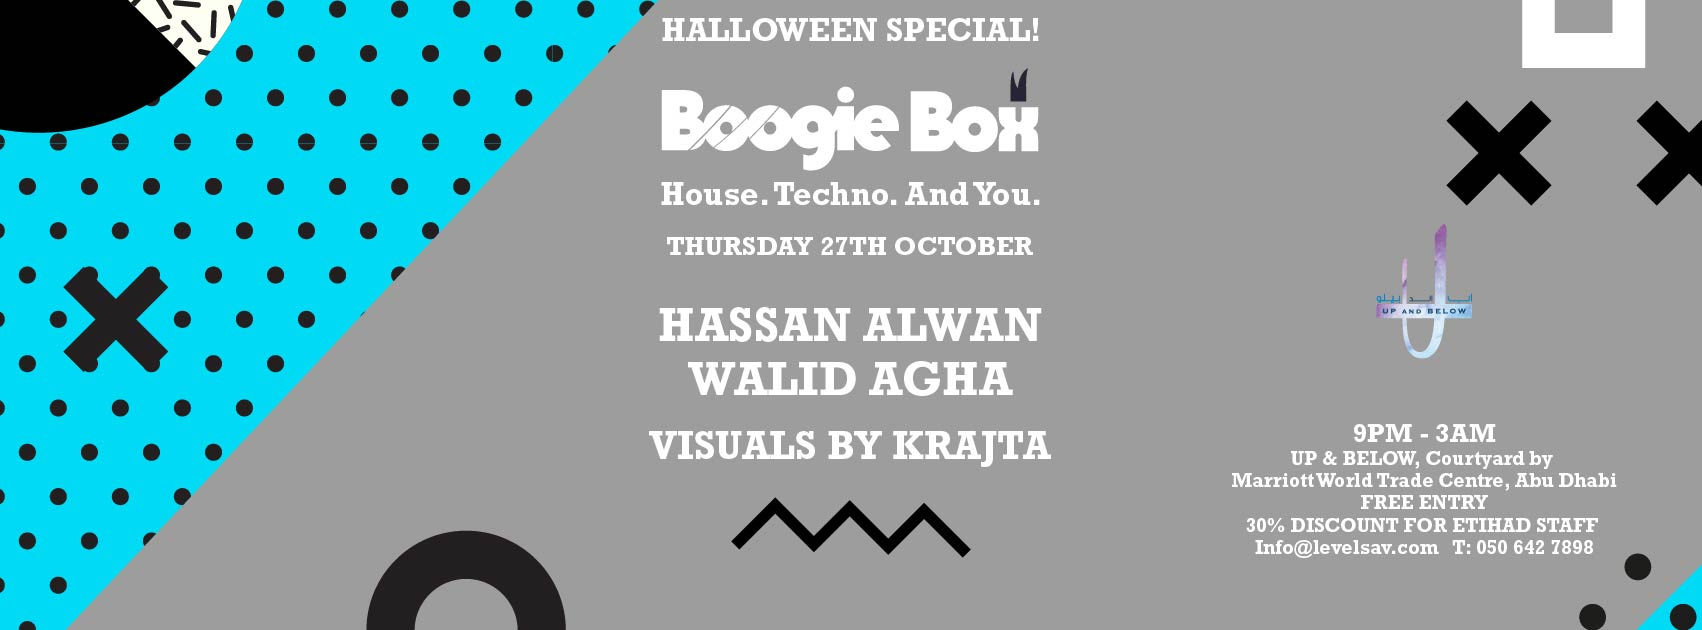 Boogie Box Halloween Special @ UP & BELOW